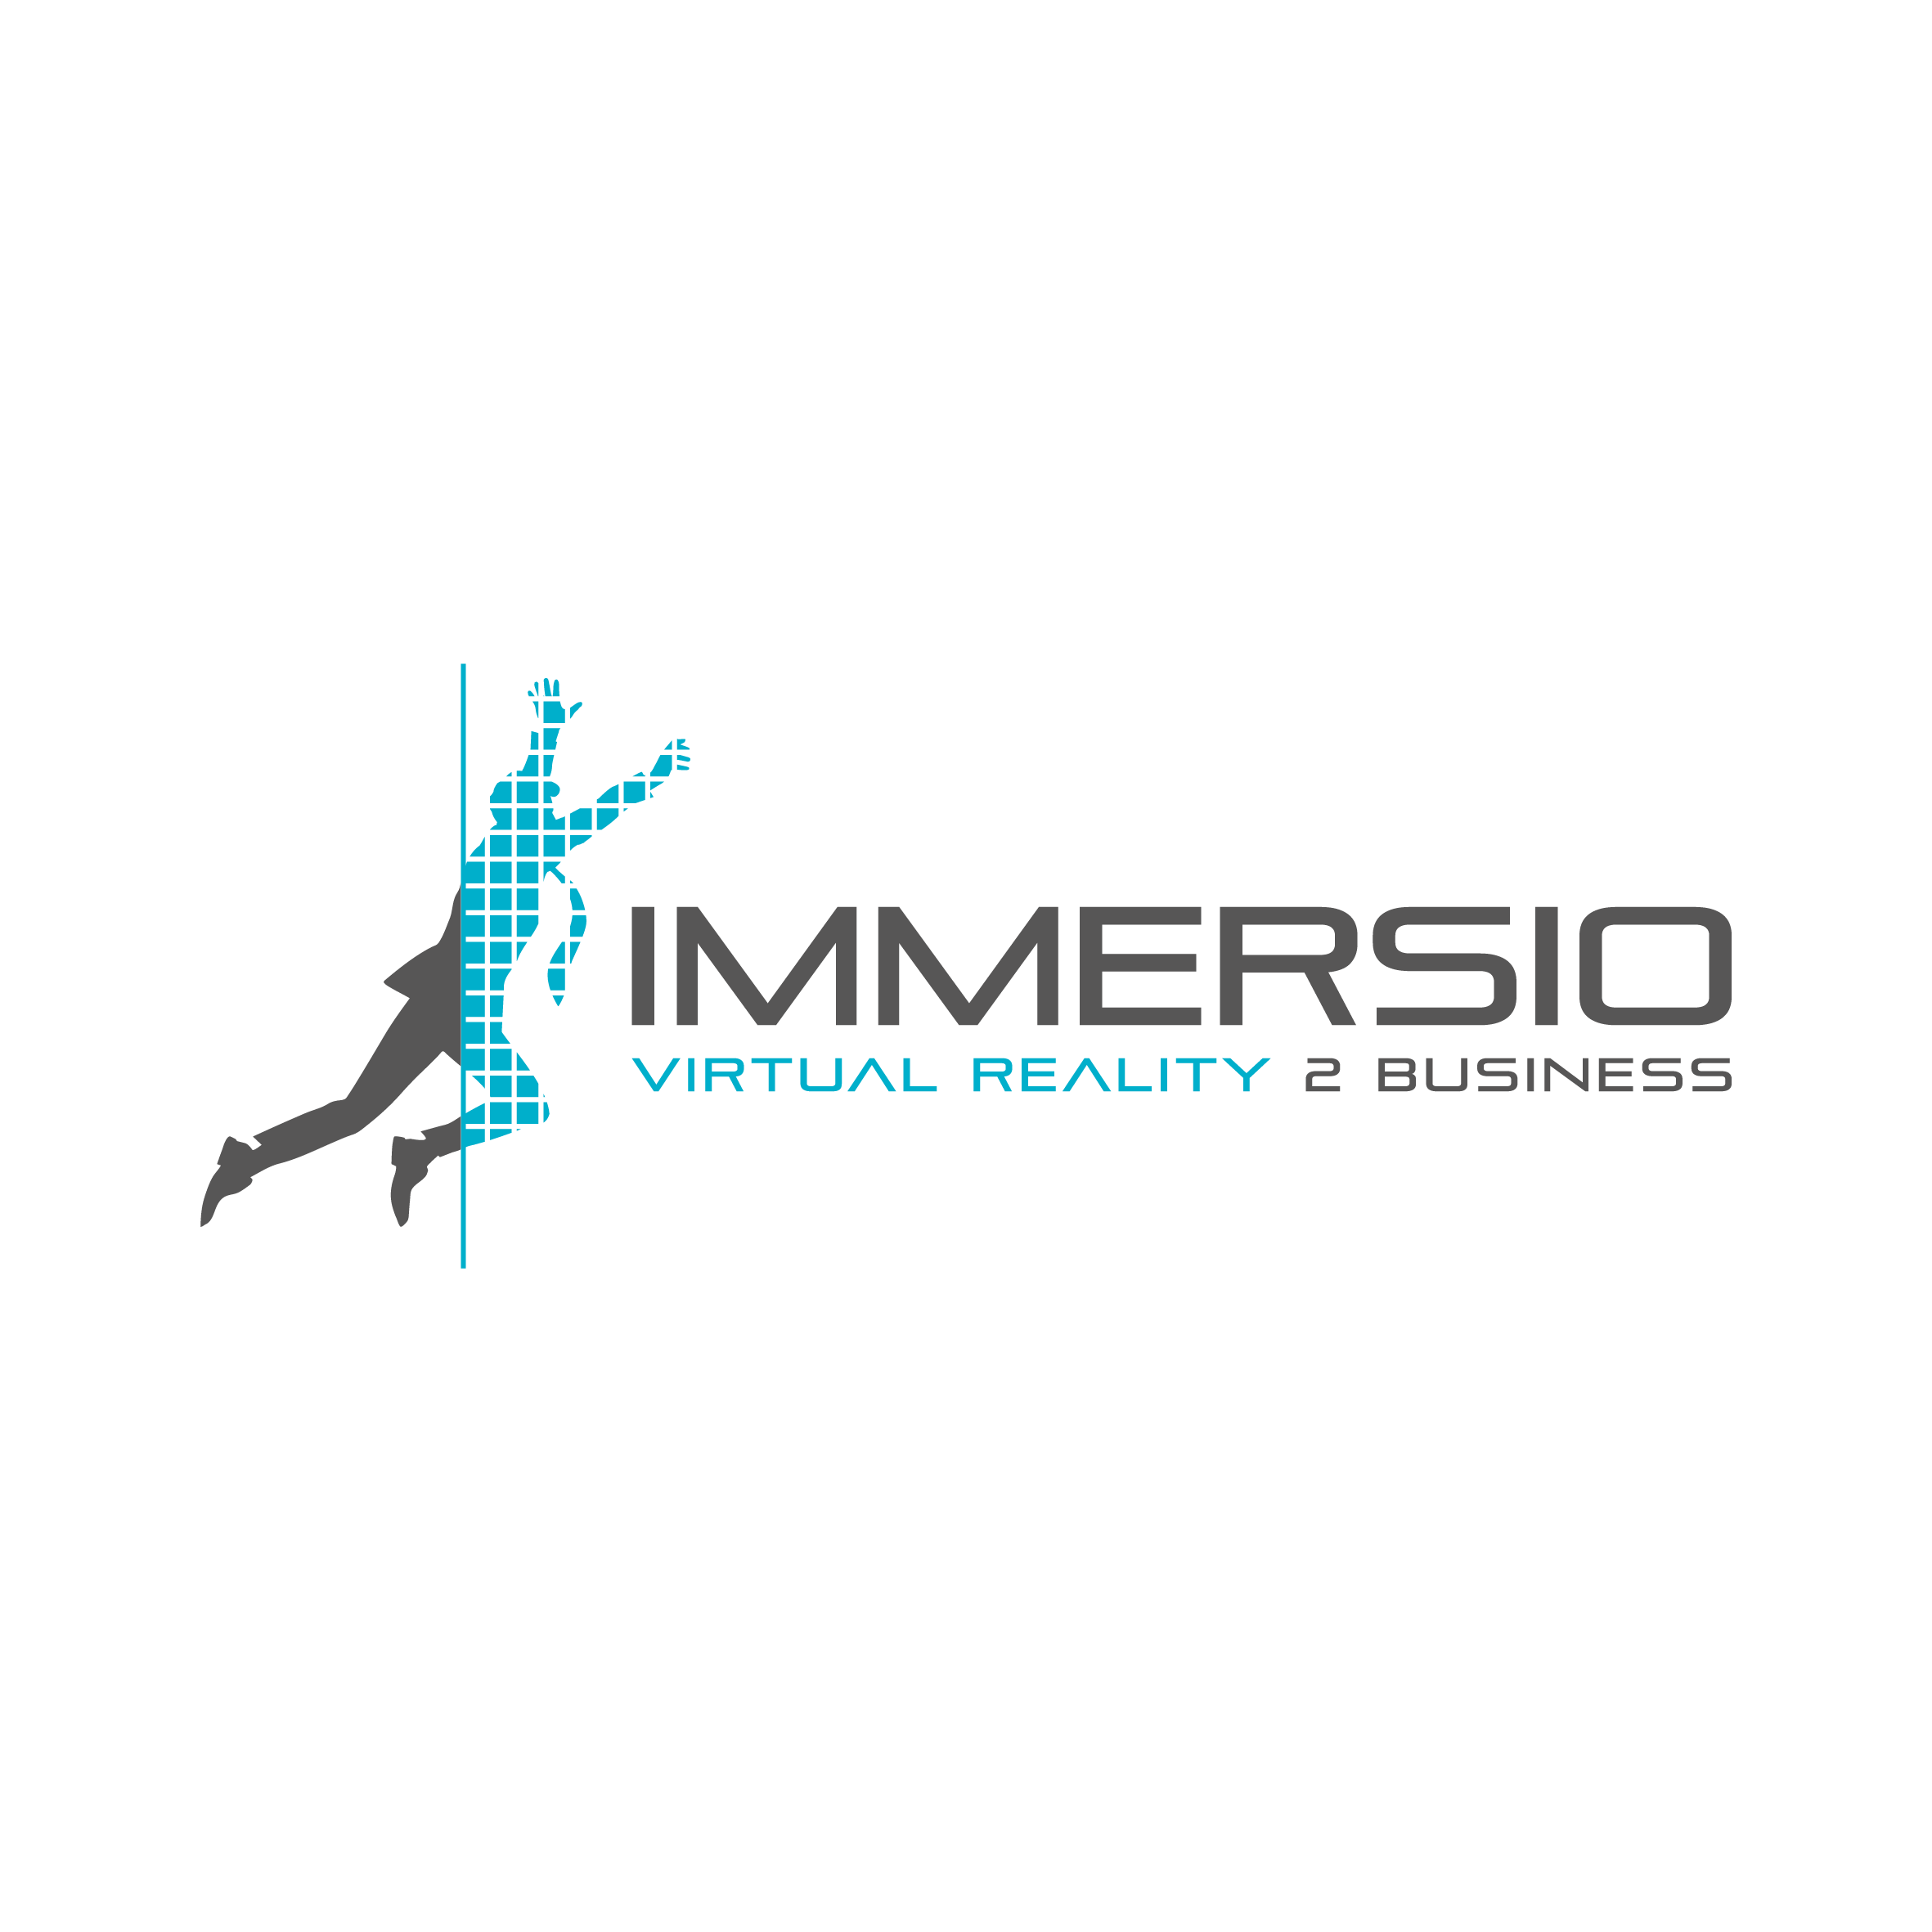 Immersio Virtual Reality 2 Business